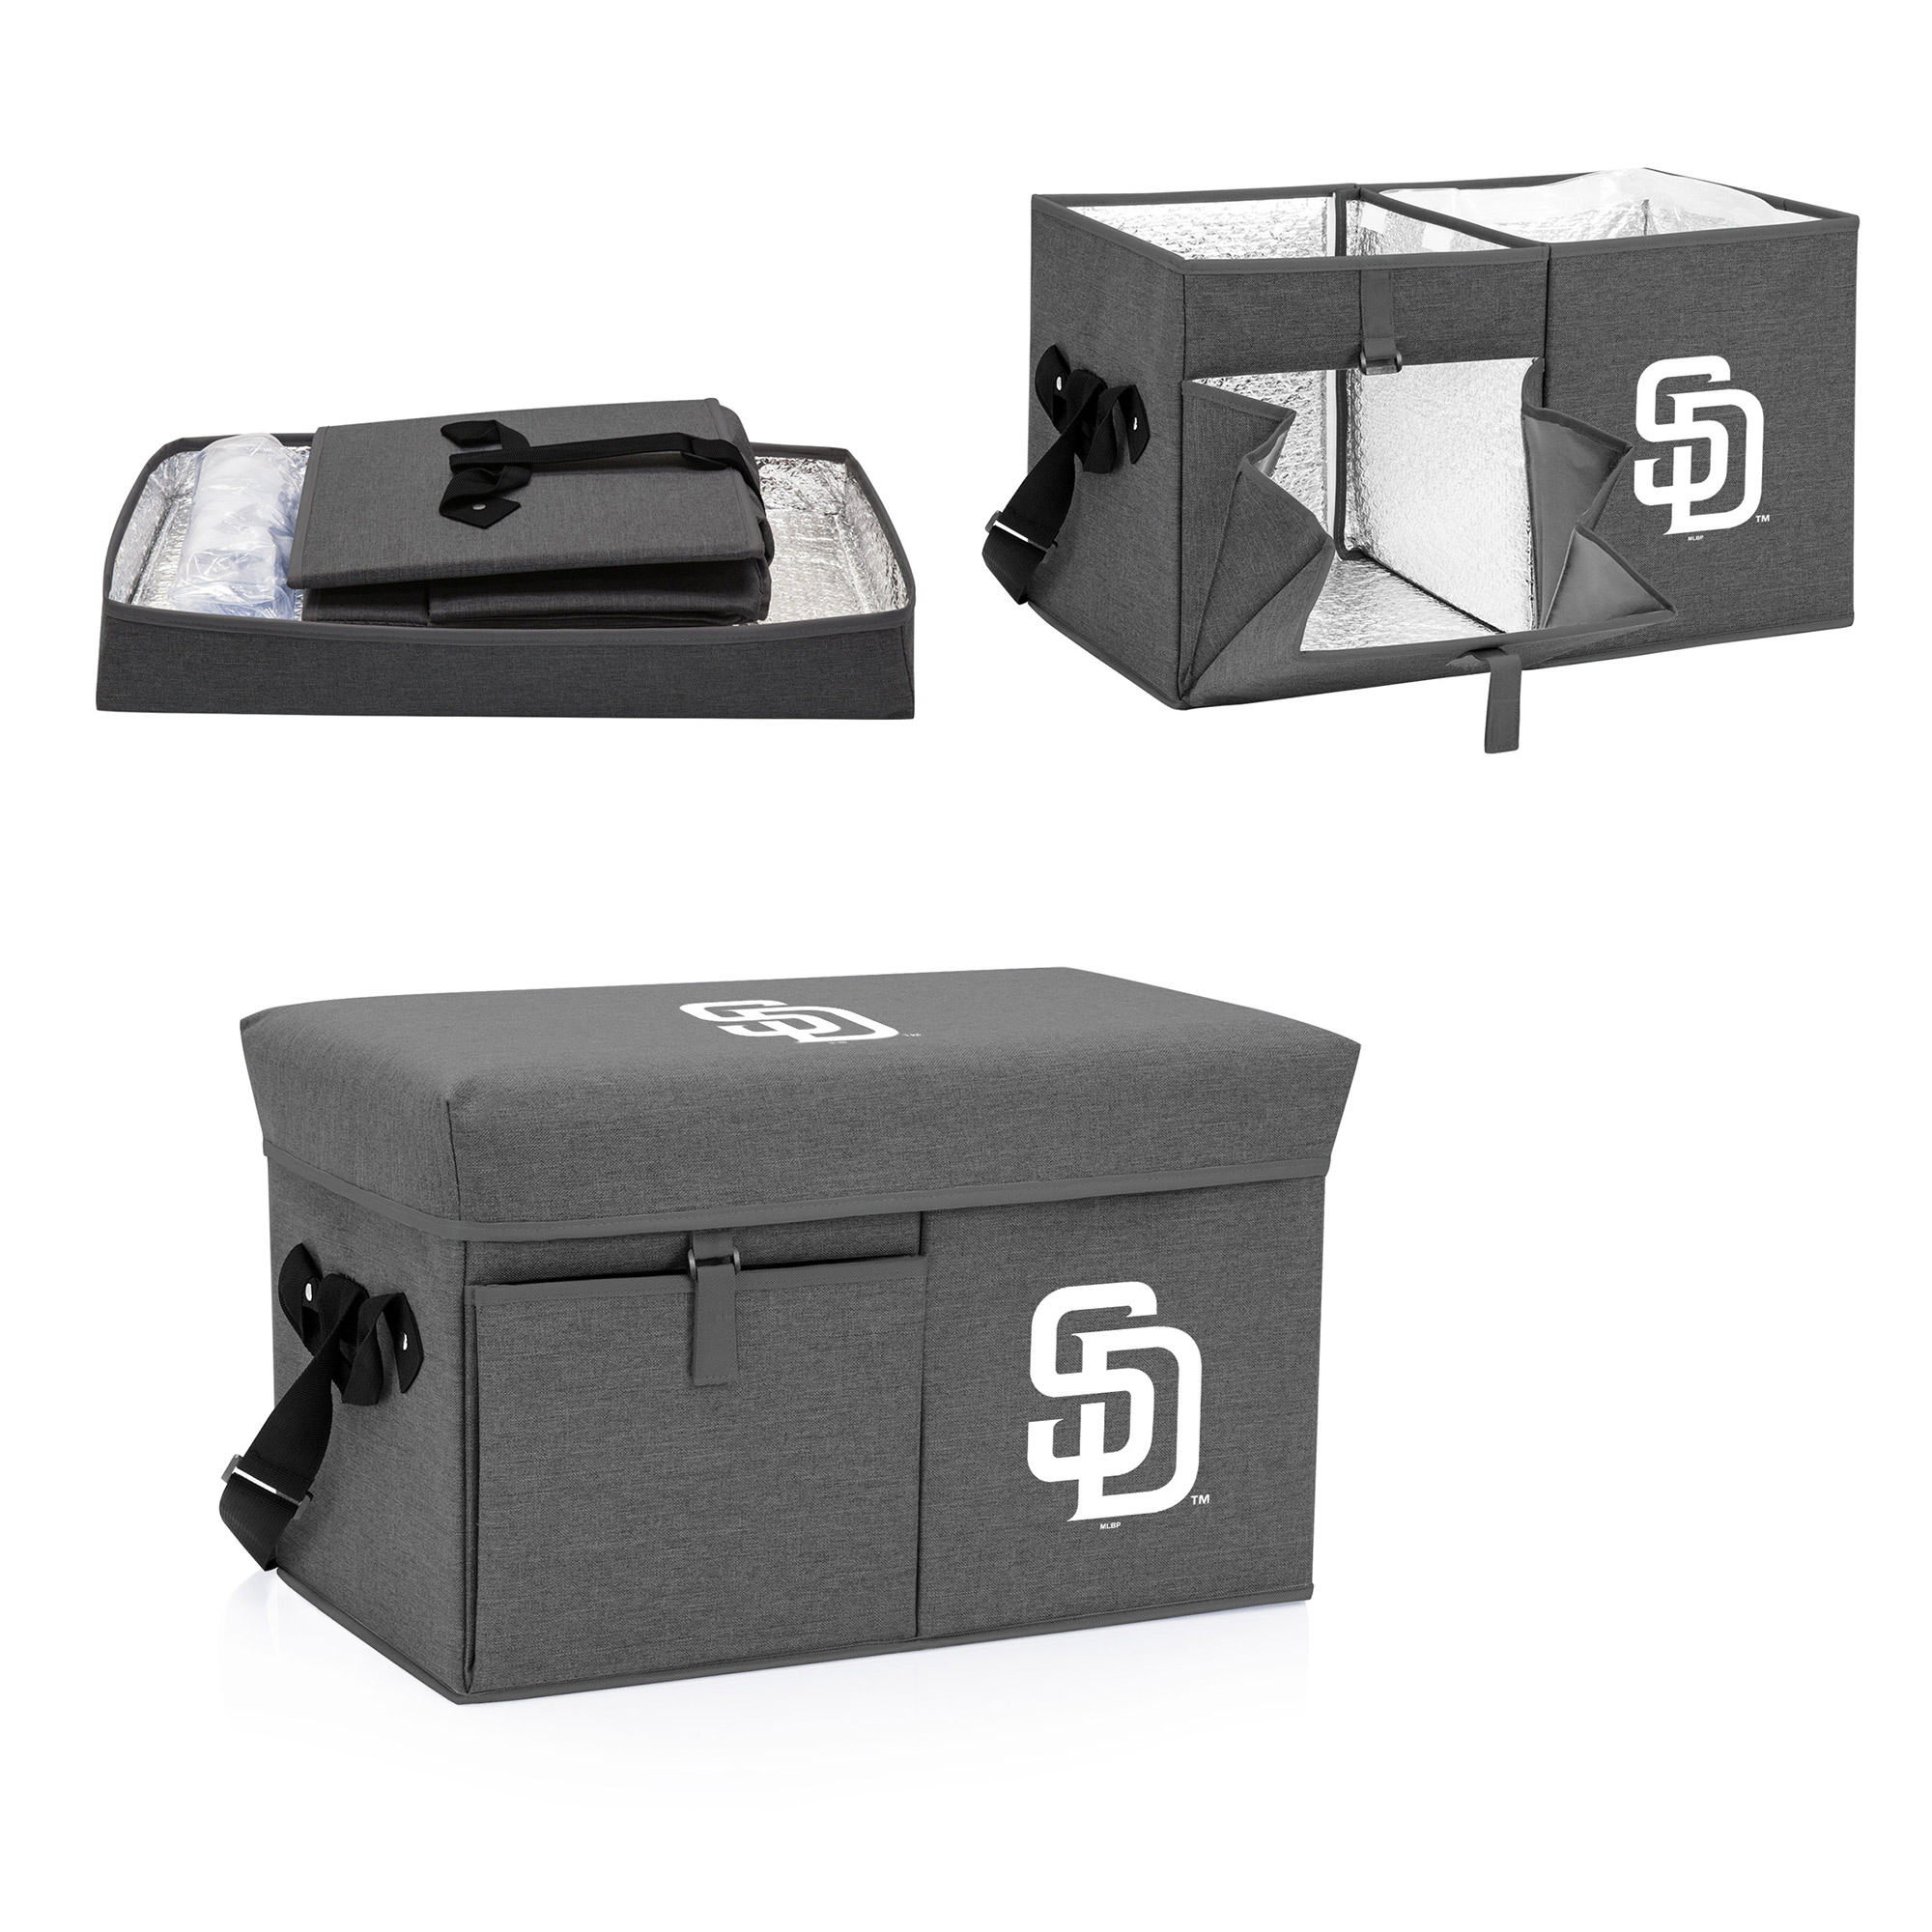 San Diego Padres Ottoman Cooler & Seat - Gray - No Size